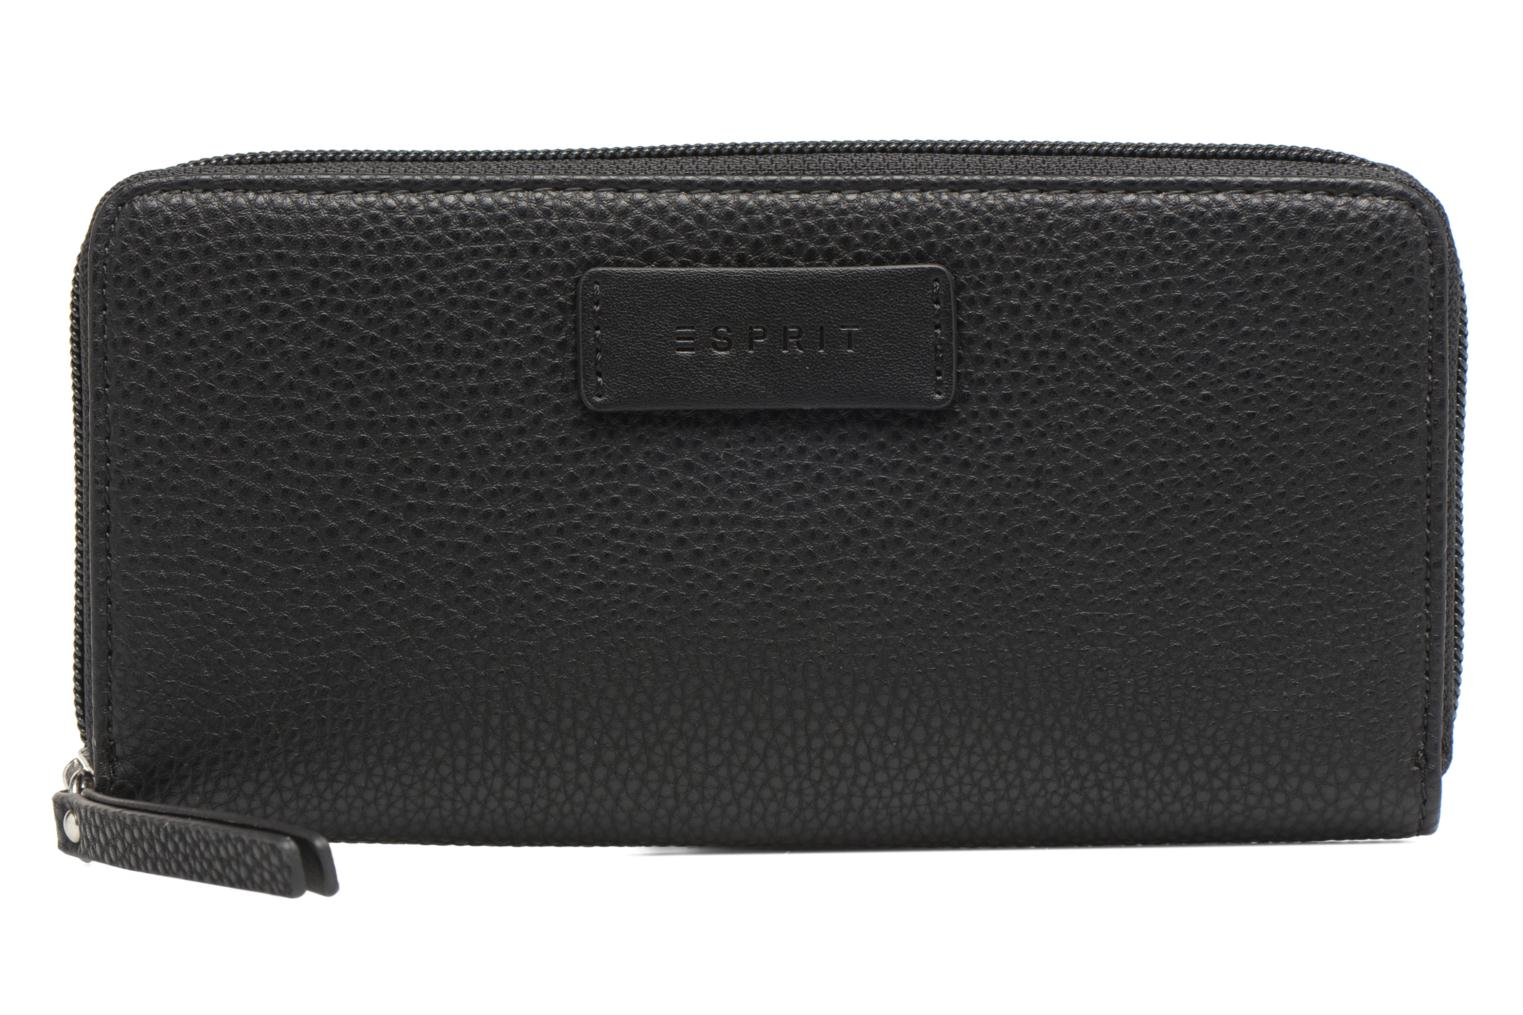 001 Wallet Zip Around Esprit black Christy 0OIwxqg8